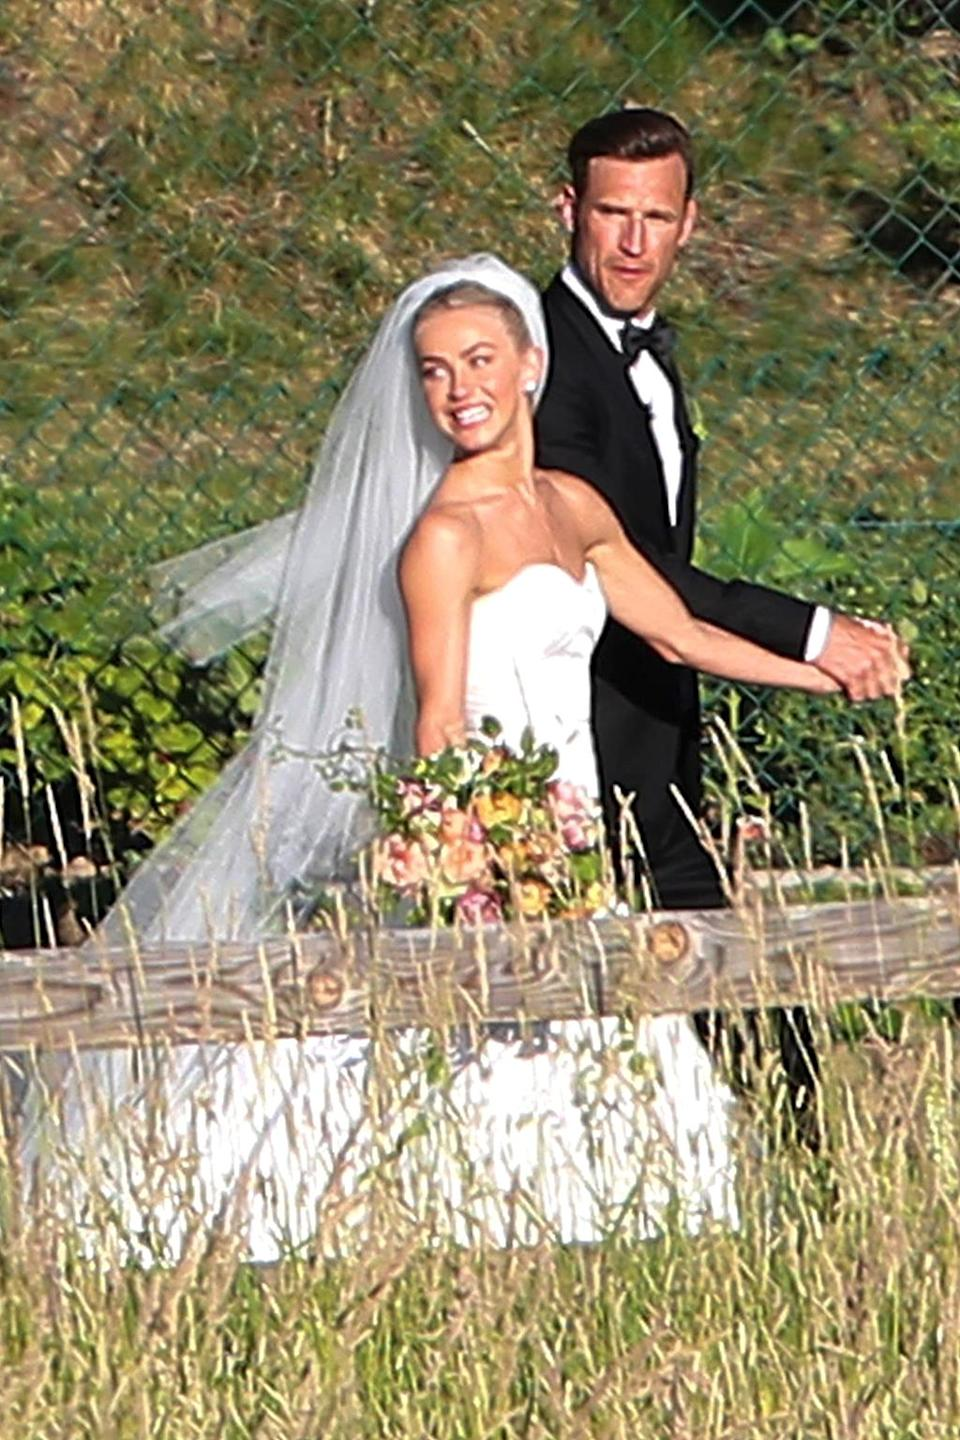 <p>Meet the Laiches! Julianne Hough and Brooks Laich tied the knot in front of friends and family in an intimate lakeside ceremony in Coeur d'Alene, Idaho. Naturally, they both looked stunning. That's one good looking Mr. and Mrs. (Photo: BACKGRID) </p>